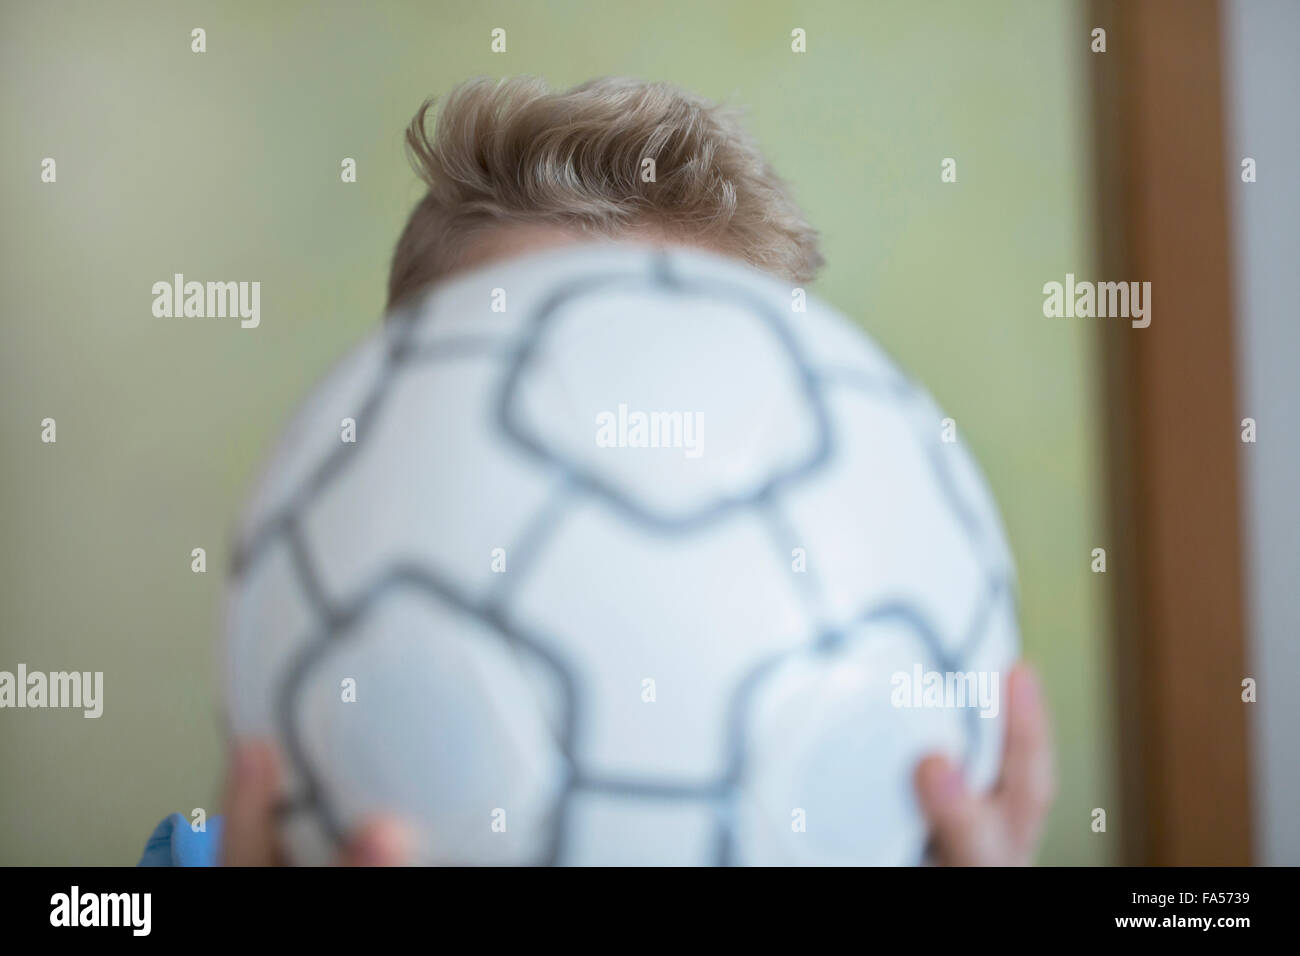 Boy holding football in front of his face, Freiburg im Breisgau, Baden-Württemberg, Germany - Stock Image